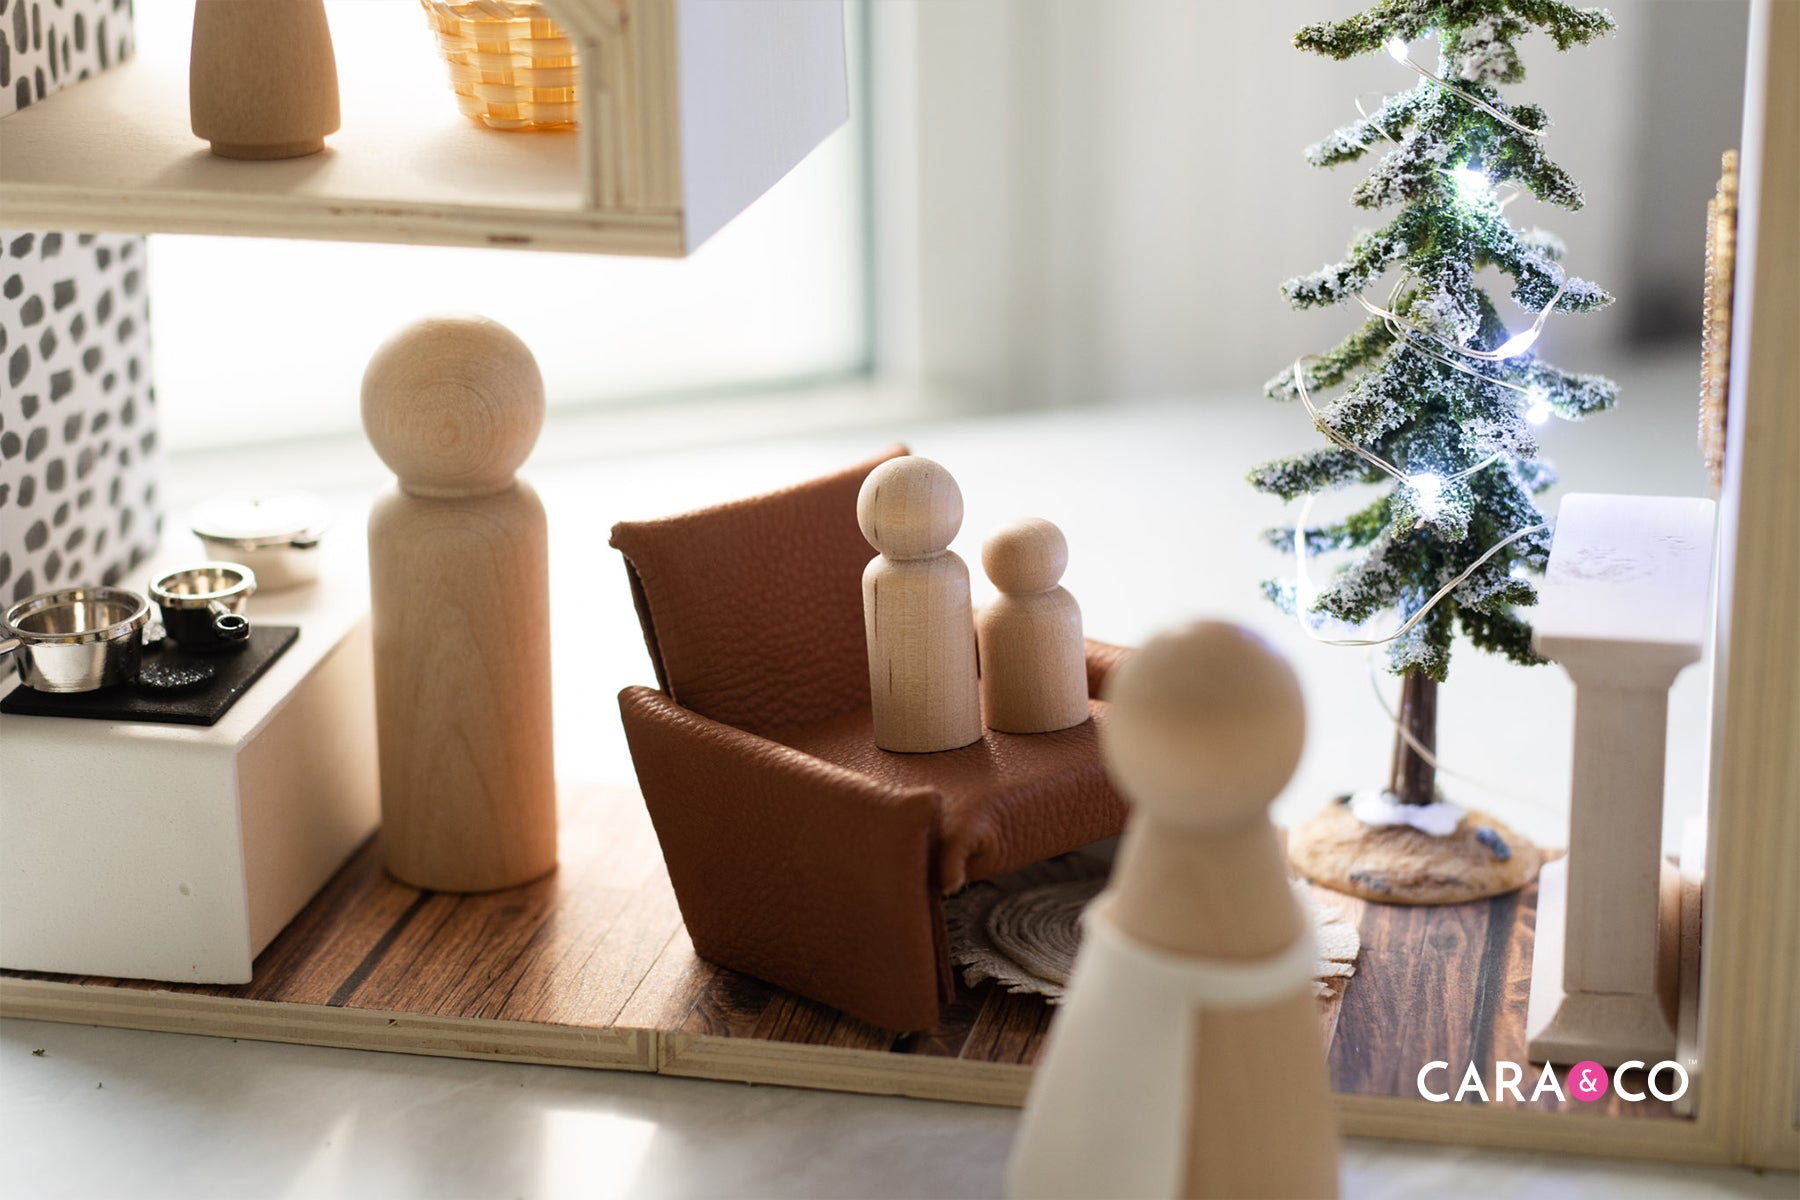 DIY dollhouse Christmas gift idea with peg people